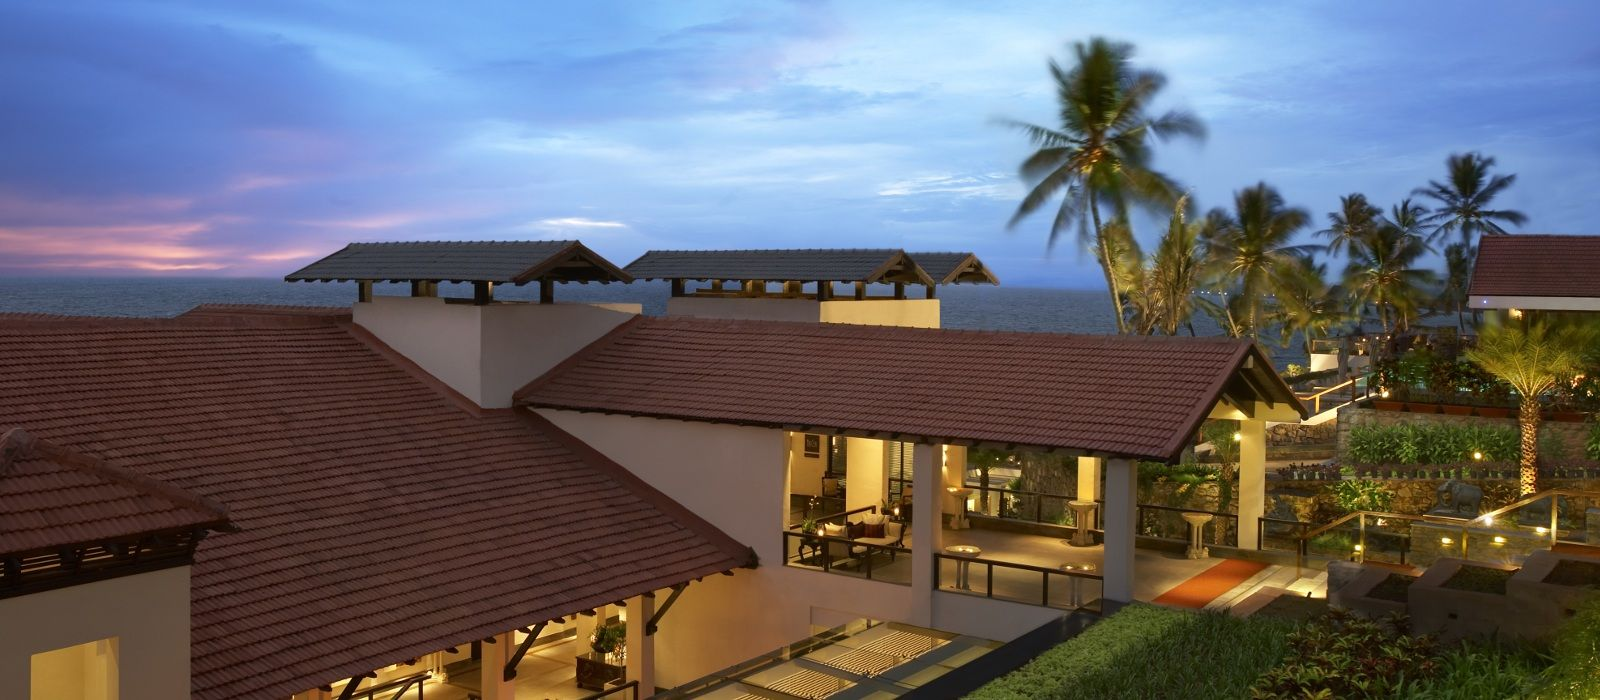 Hotel The Leela Kovalam Südindien